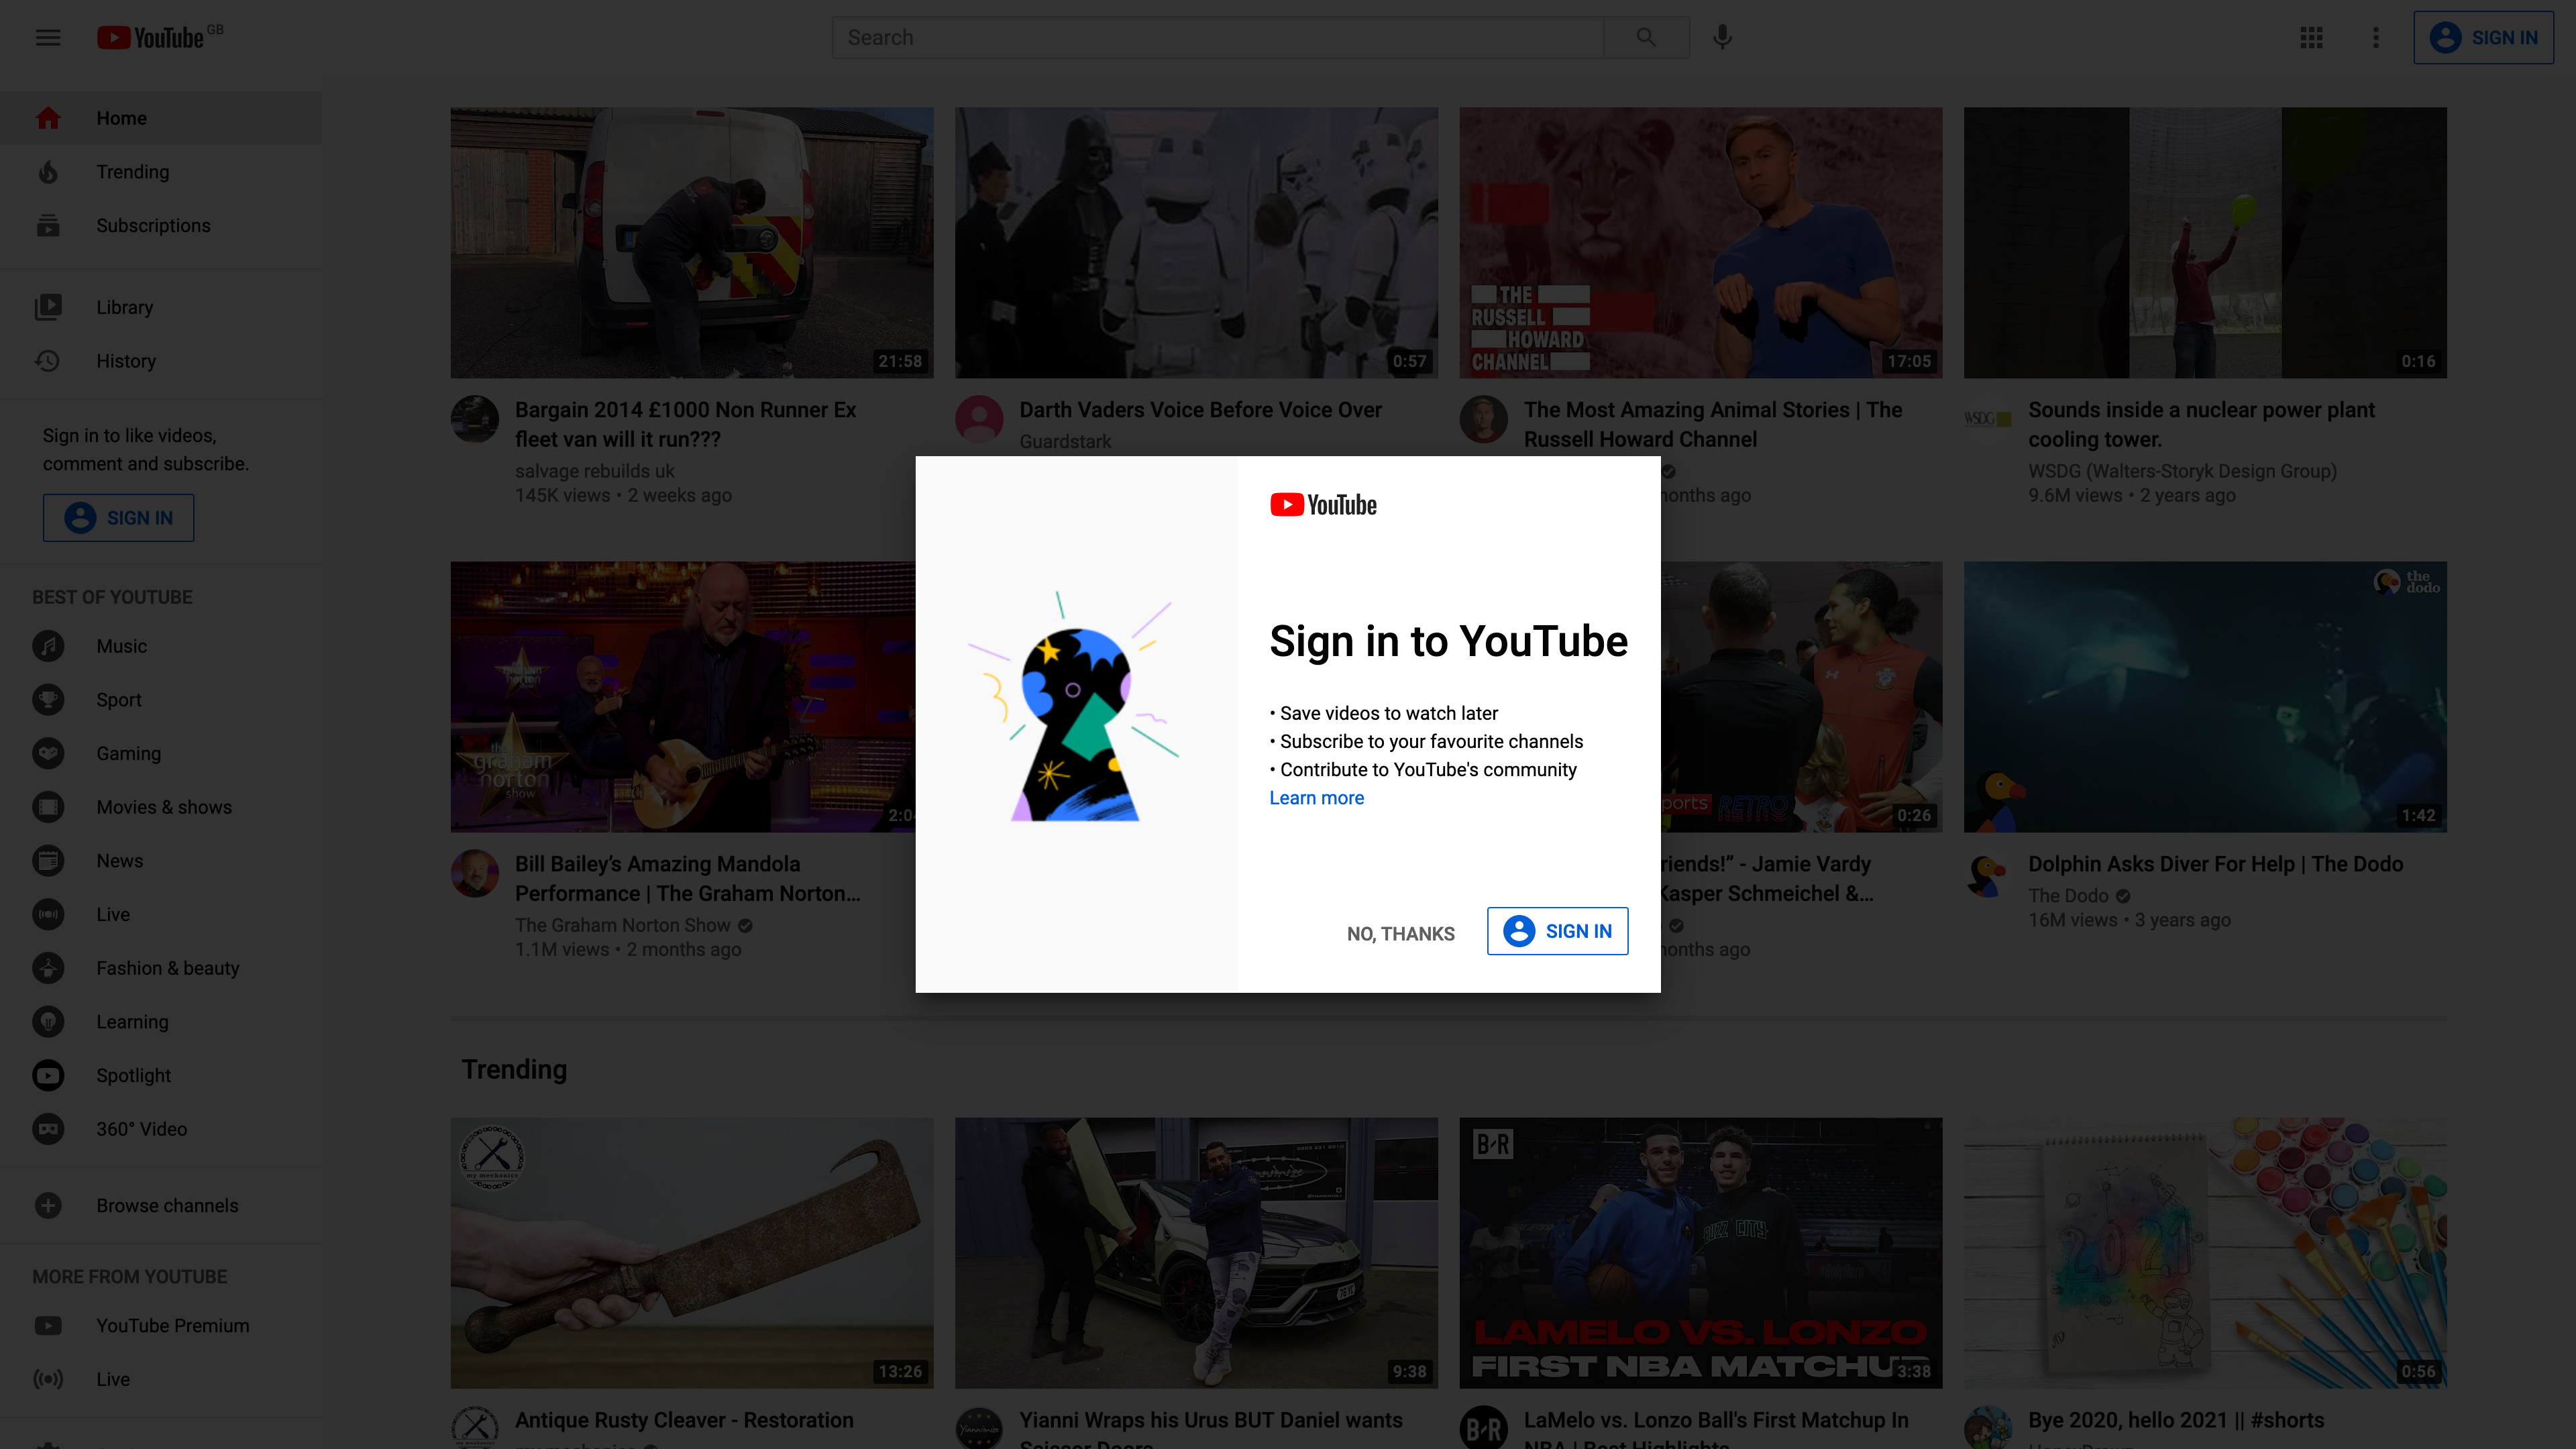 Sign in to YouTube screenshot